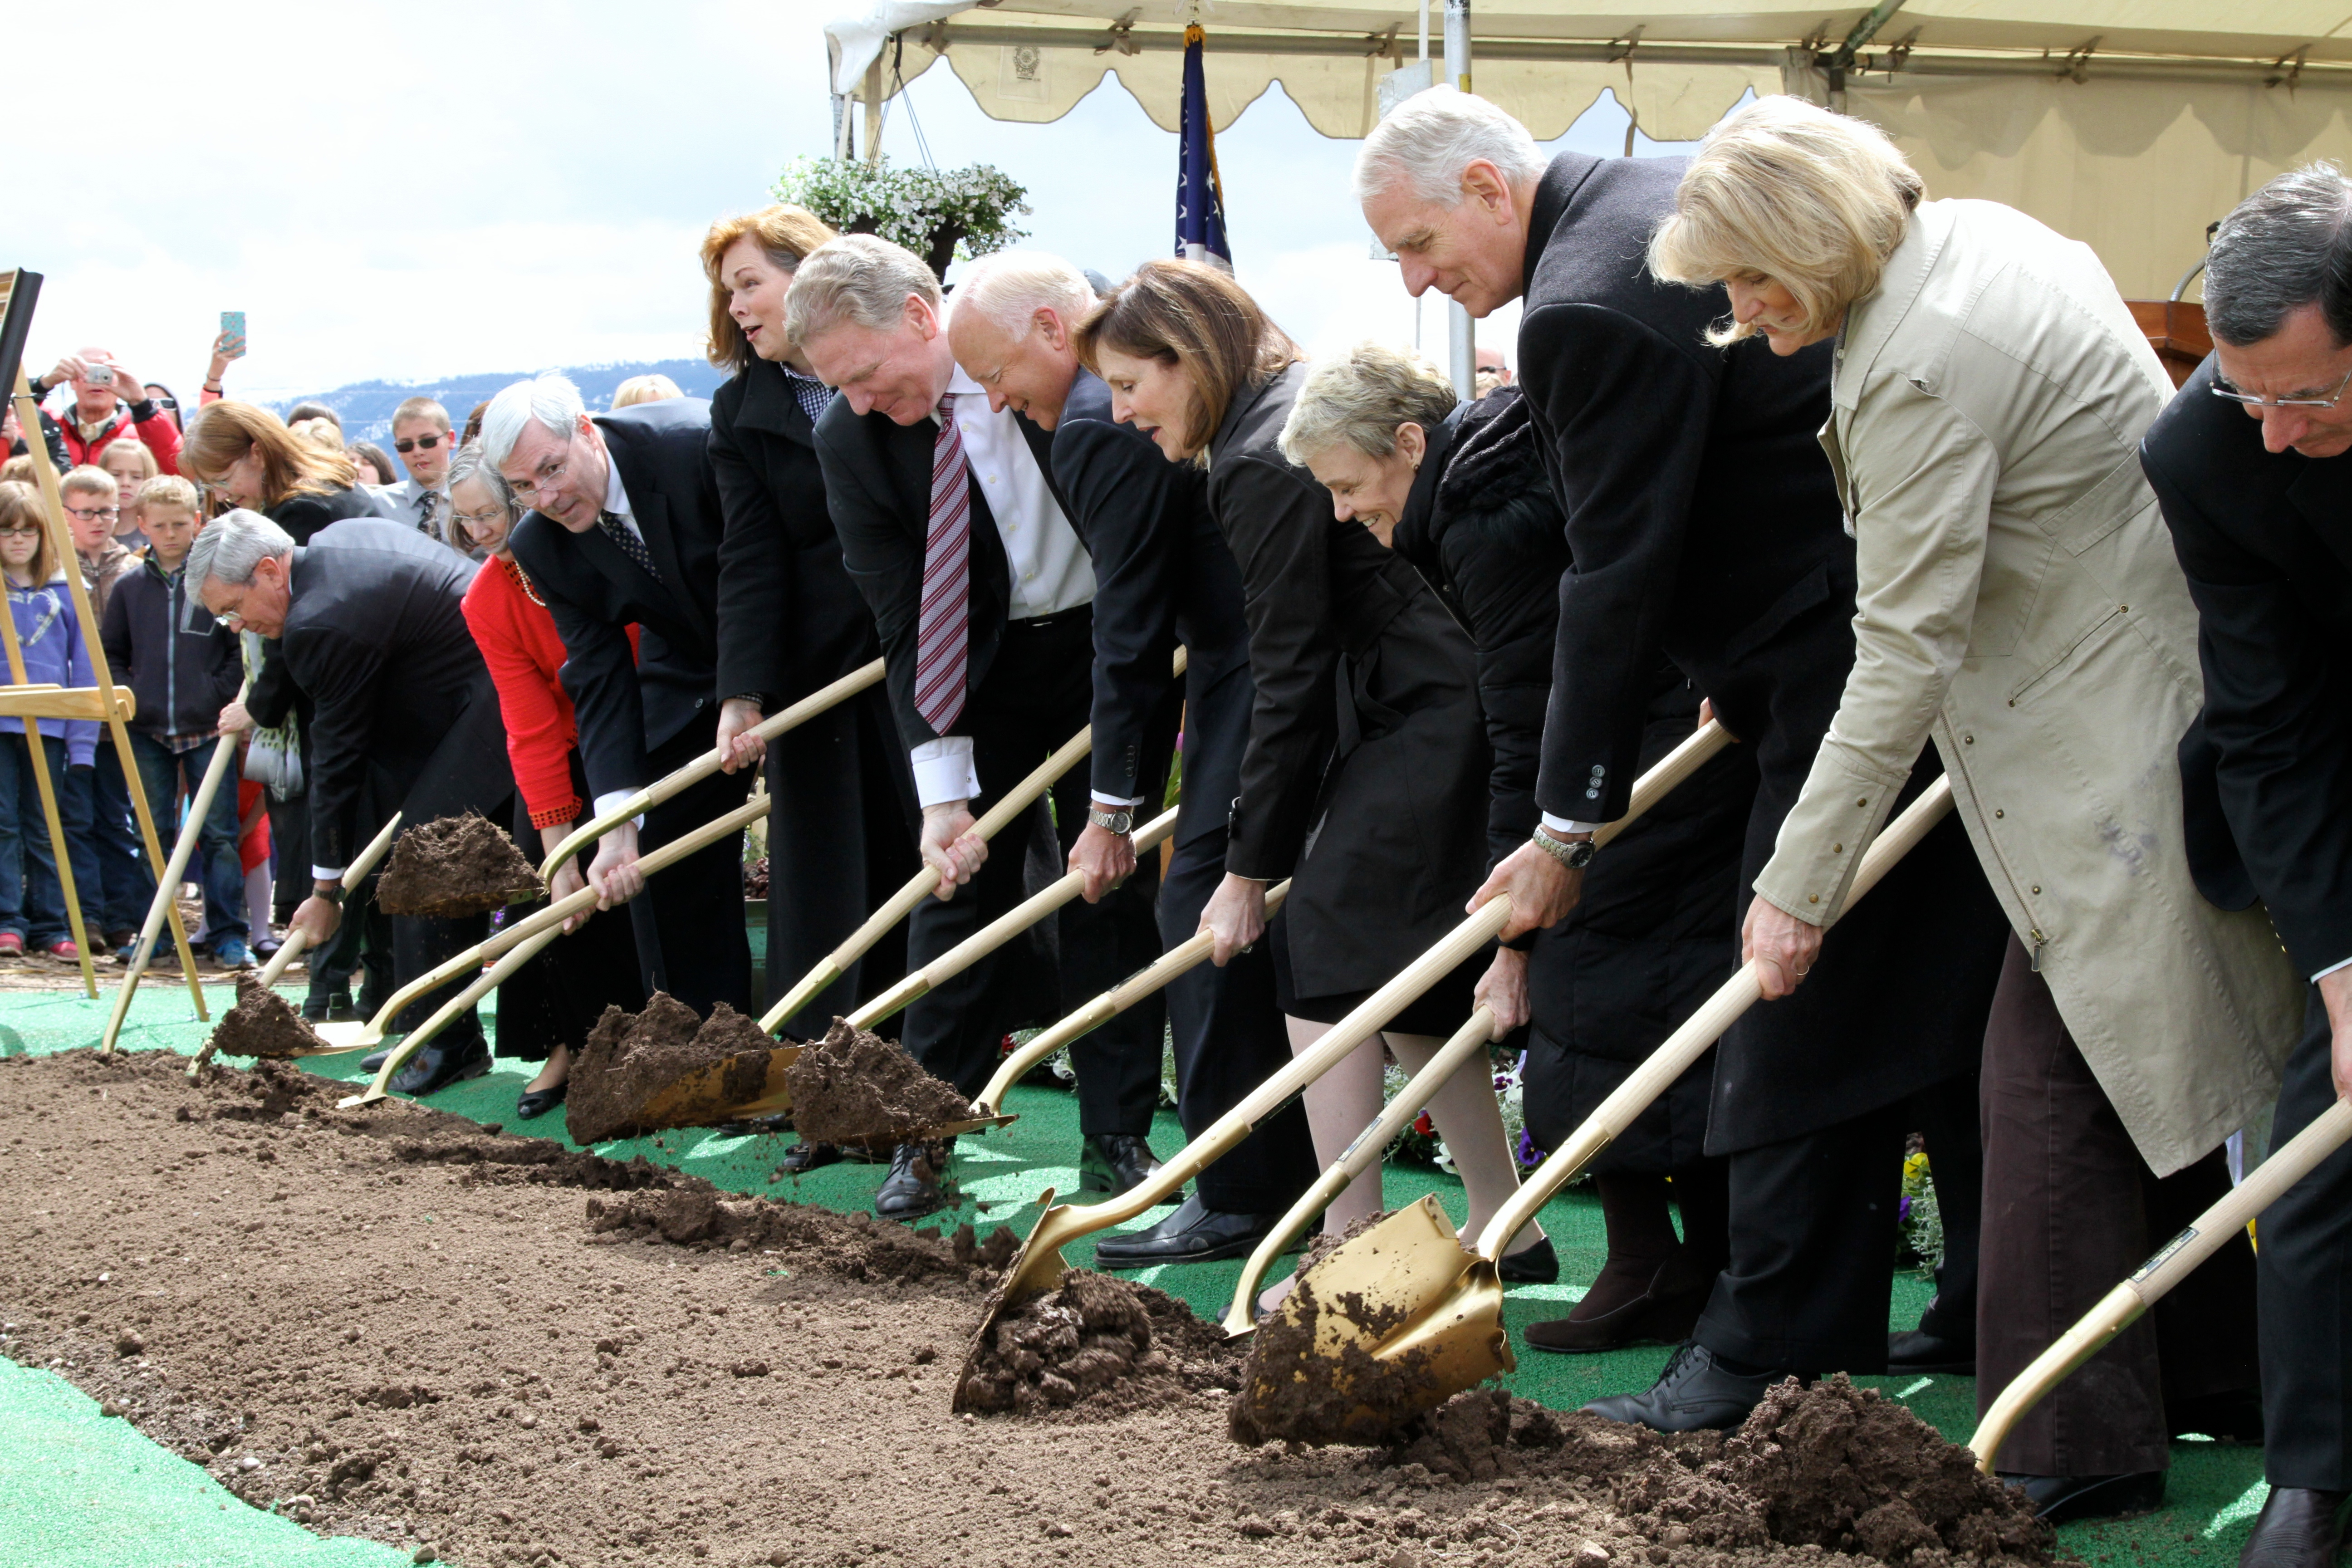 Church breaks ground for Star Valley Temple